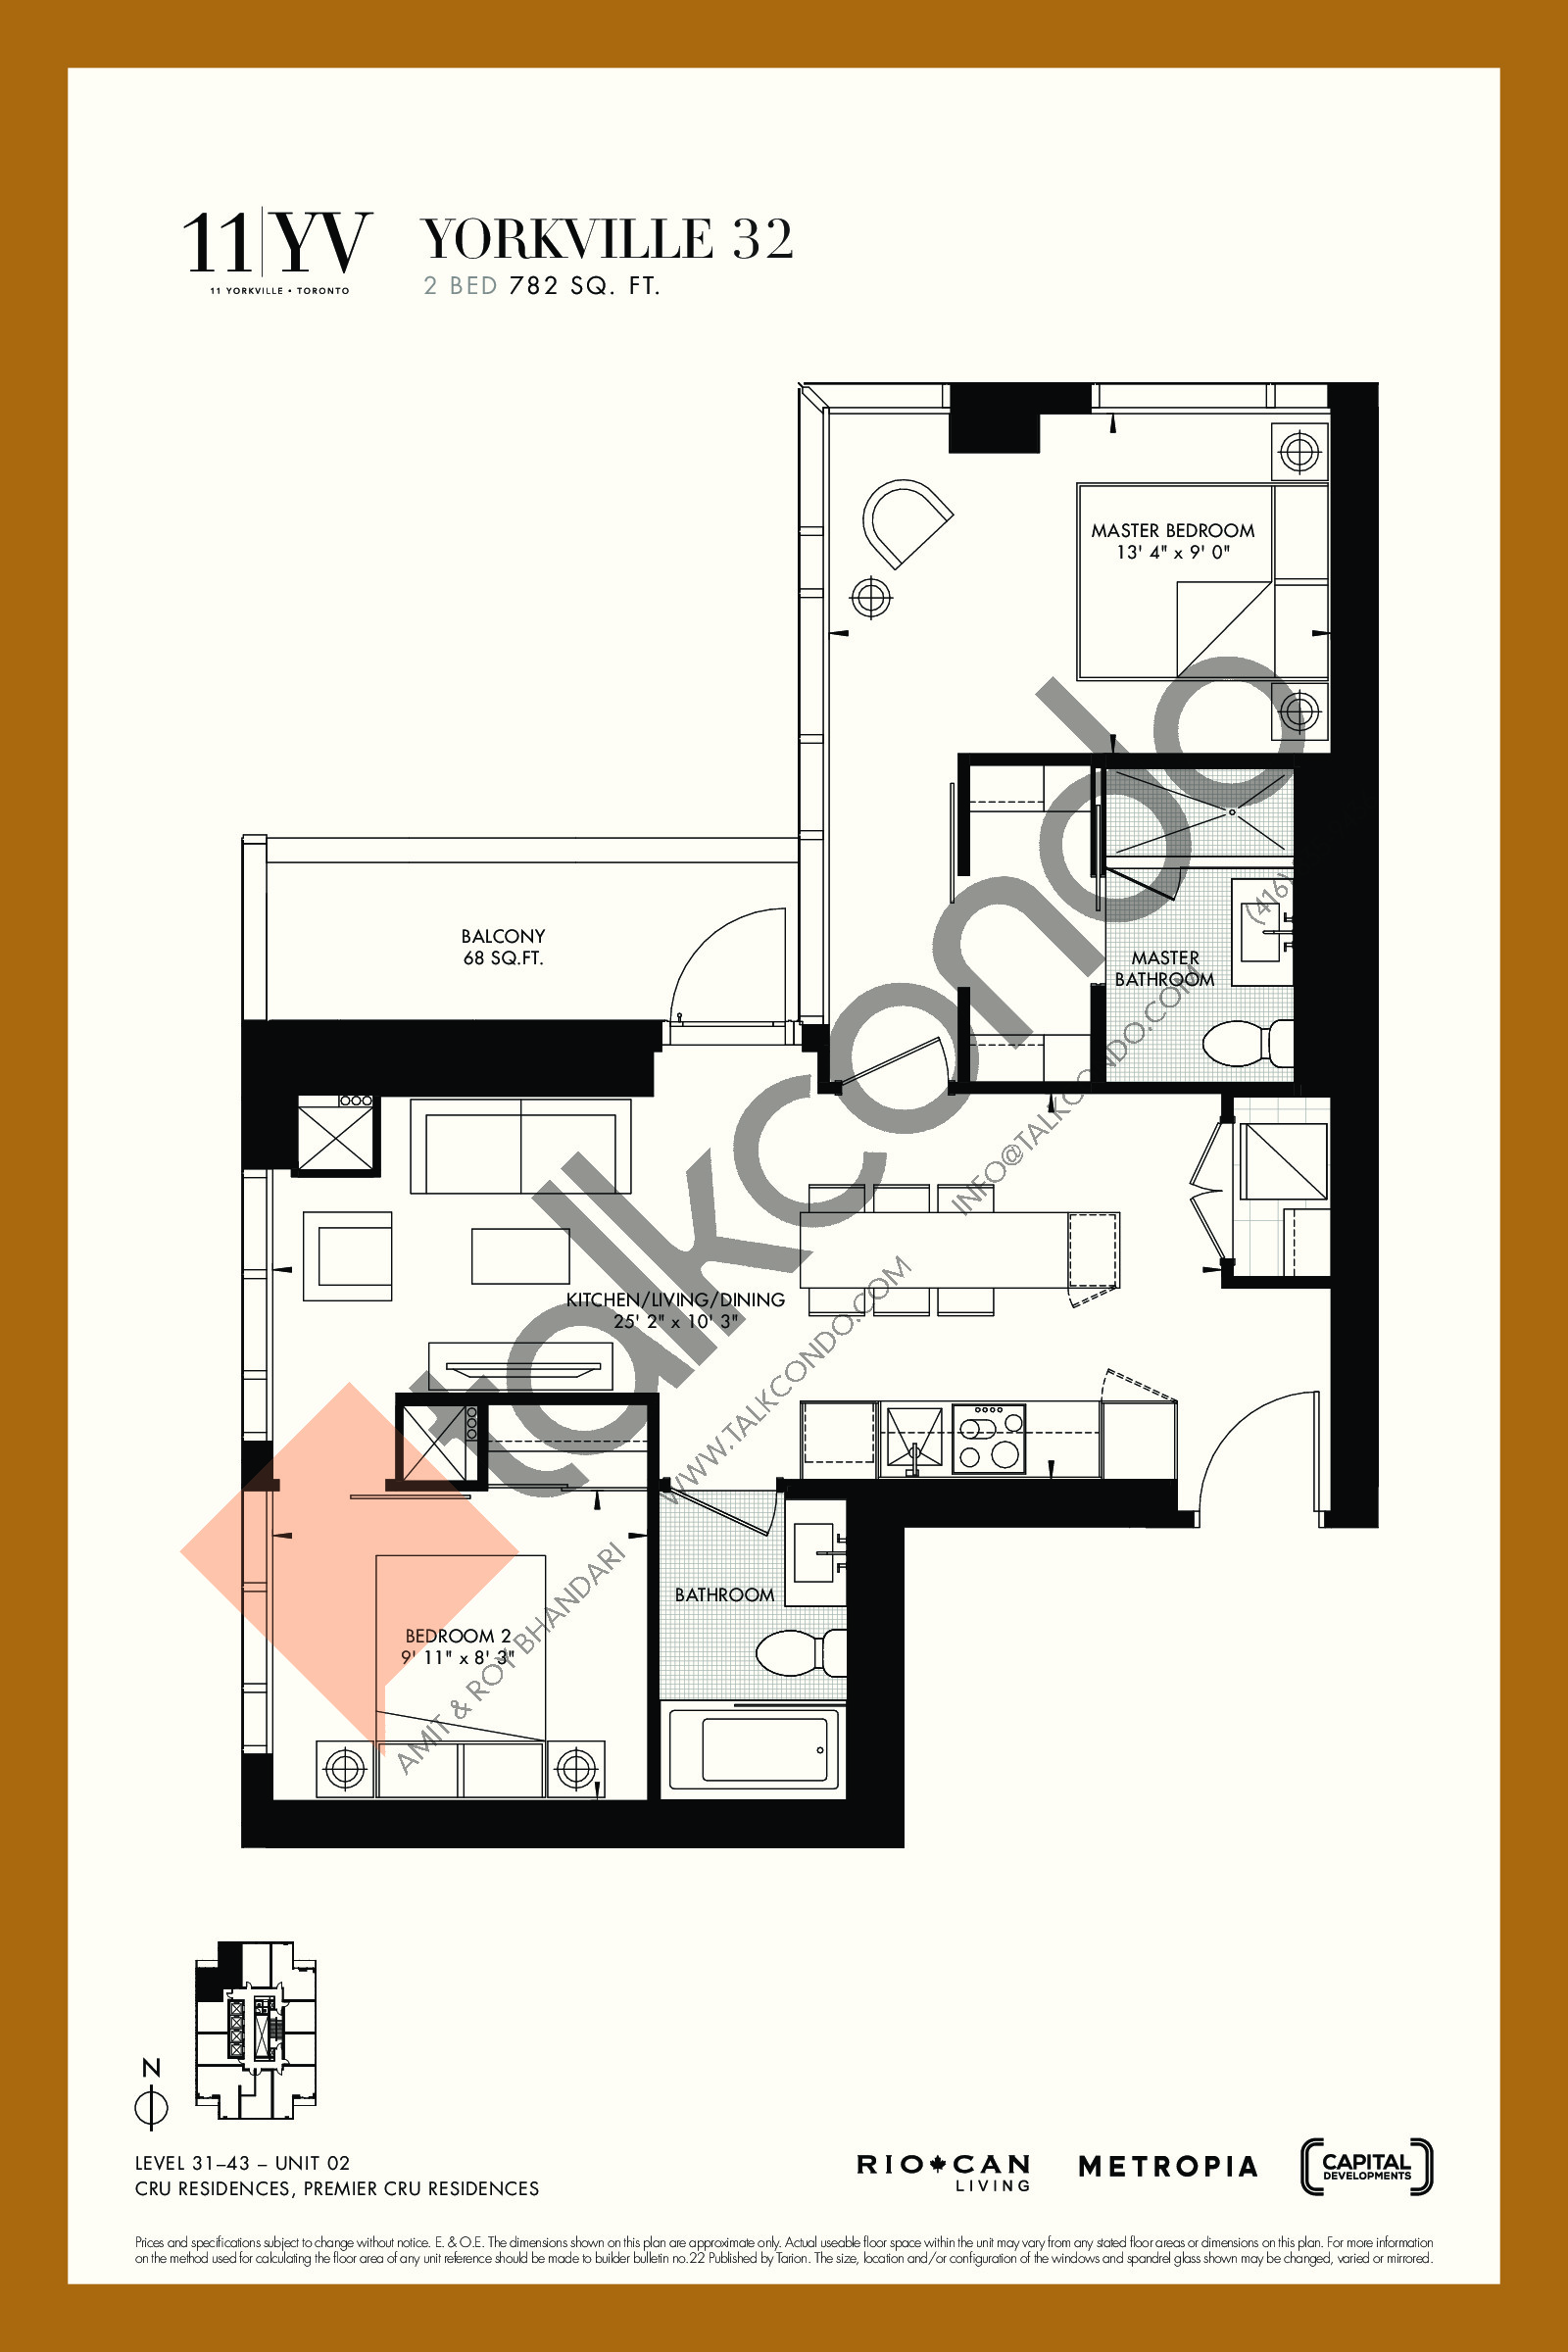 Yorkville 32 Floor Plan at 11YV Condos - 782 sq.ft